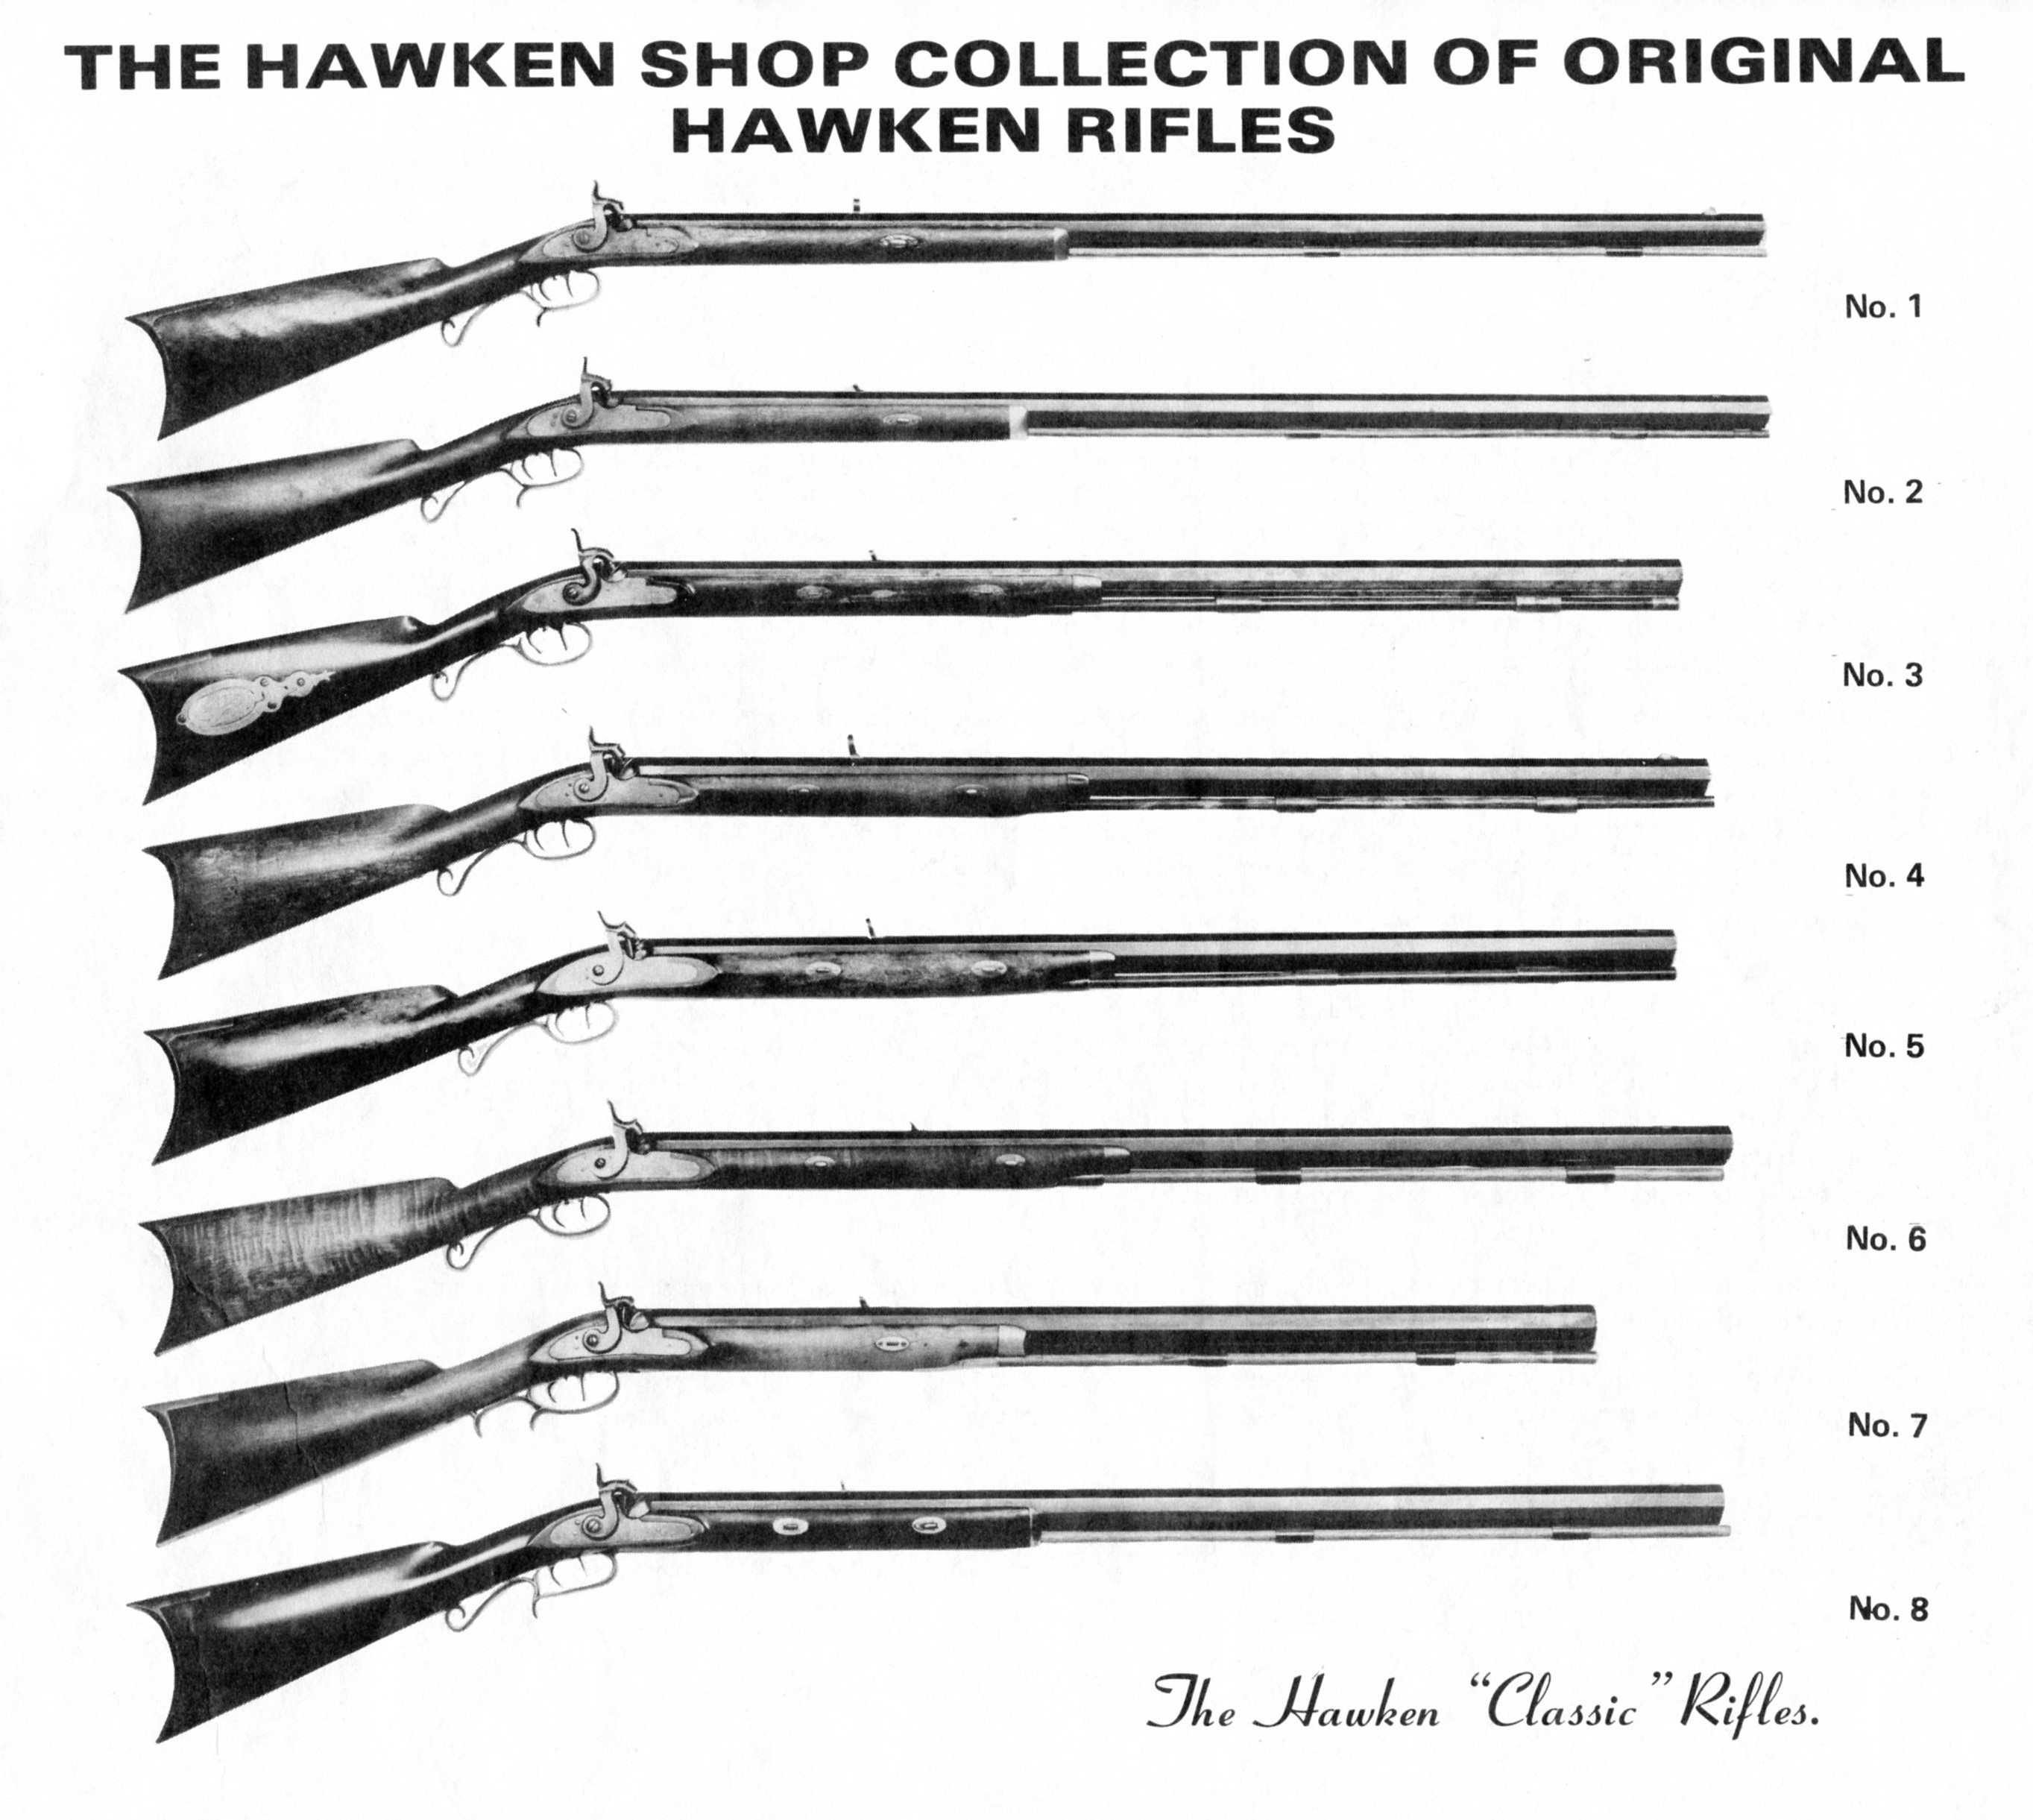 Hawken Shop catalog No 2 Hawken rifle collection